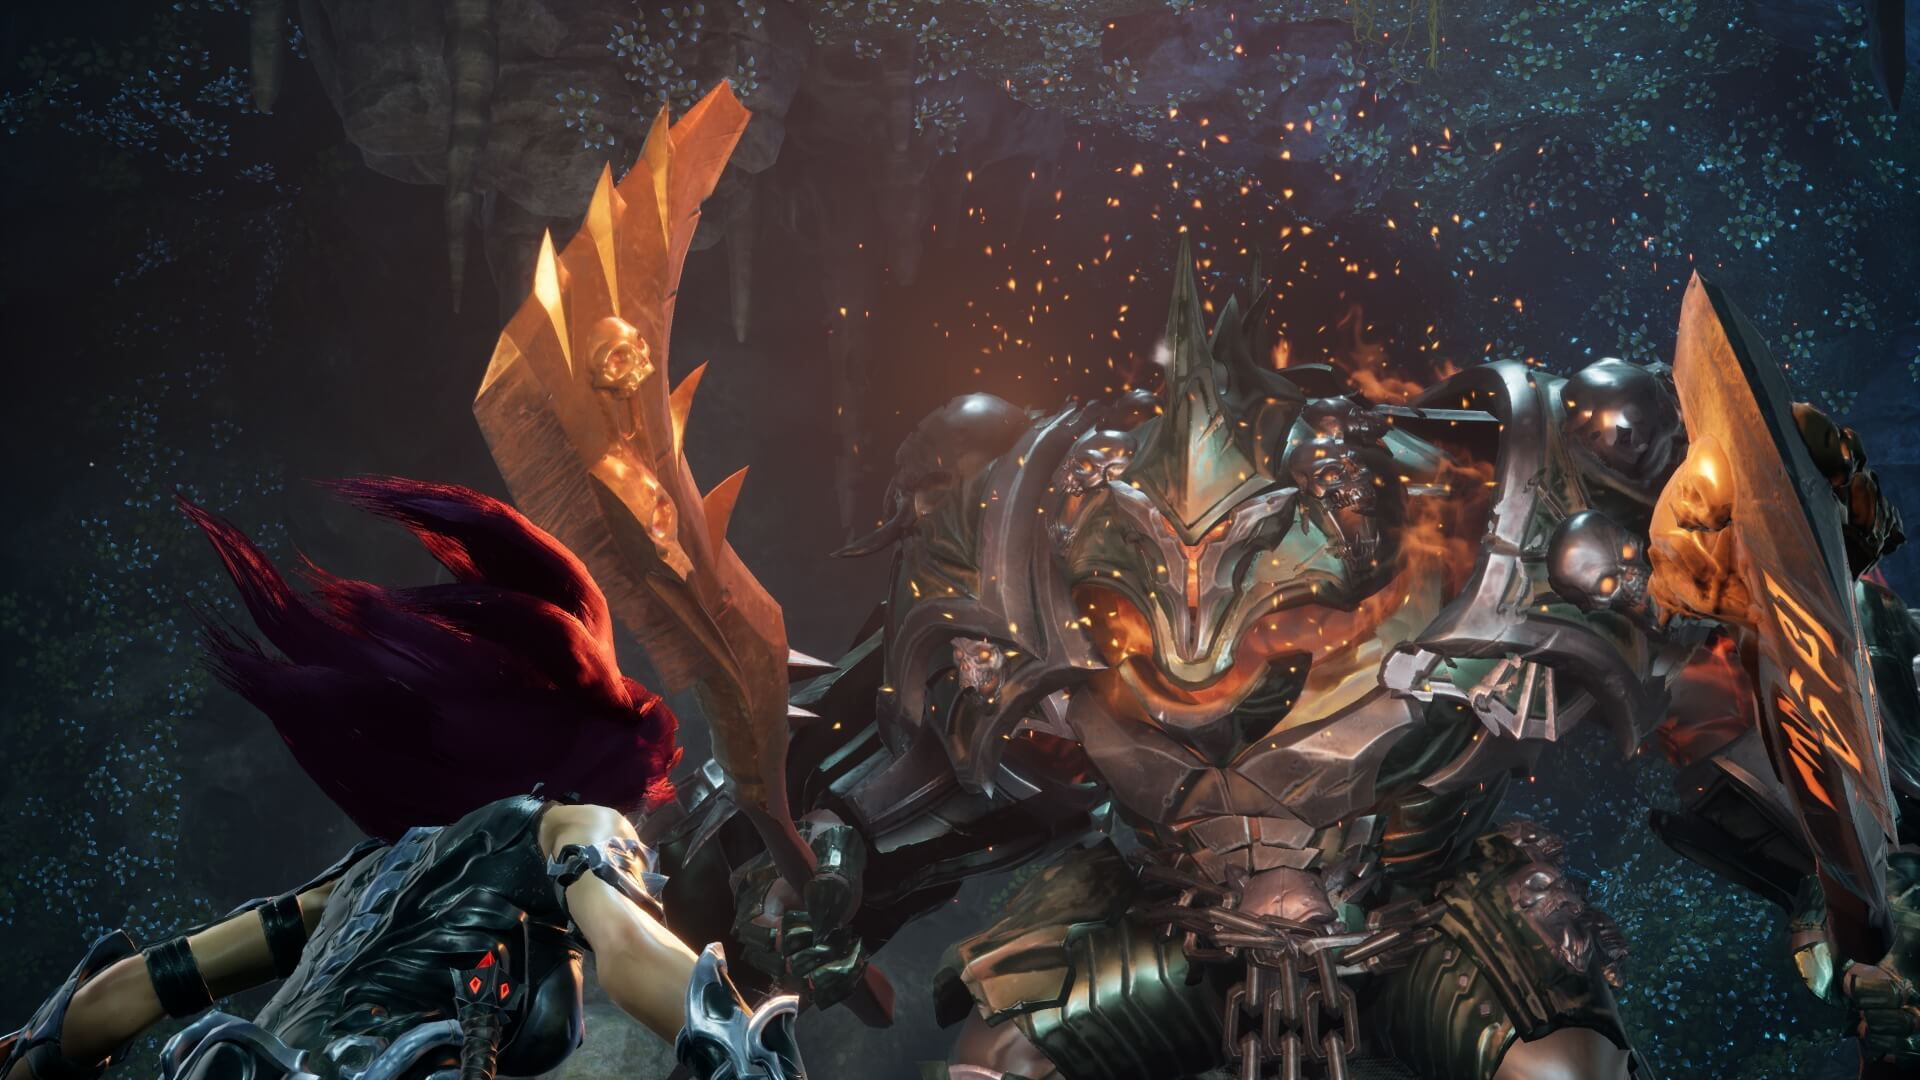 Darksiders Iii Official Website